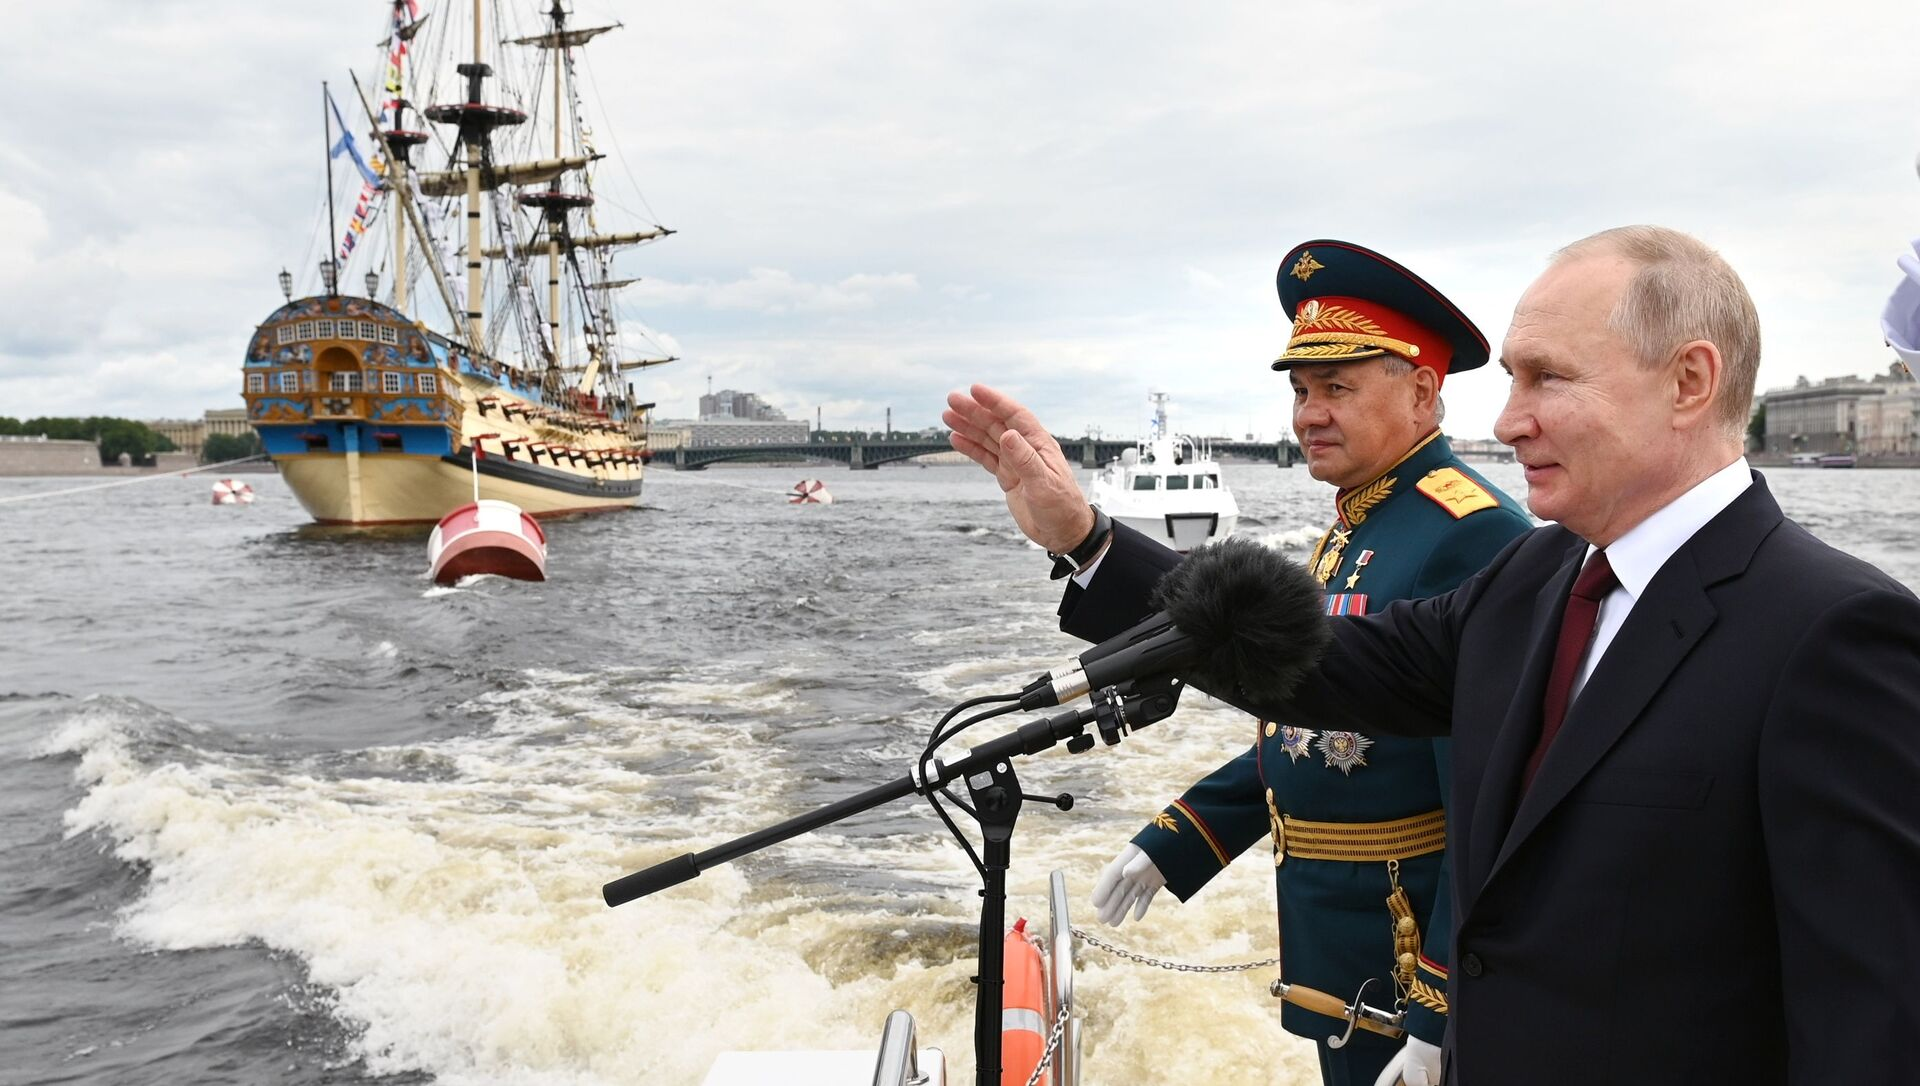 President Vladimir Putin attends the parade in St. Petersburg on the 325th anniversary of the Russian Navy, 25 July 2021 - Sputnik International, 1920, 25.07.2021